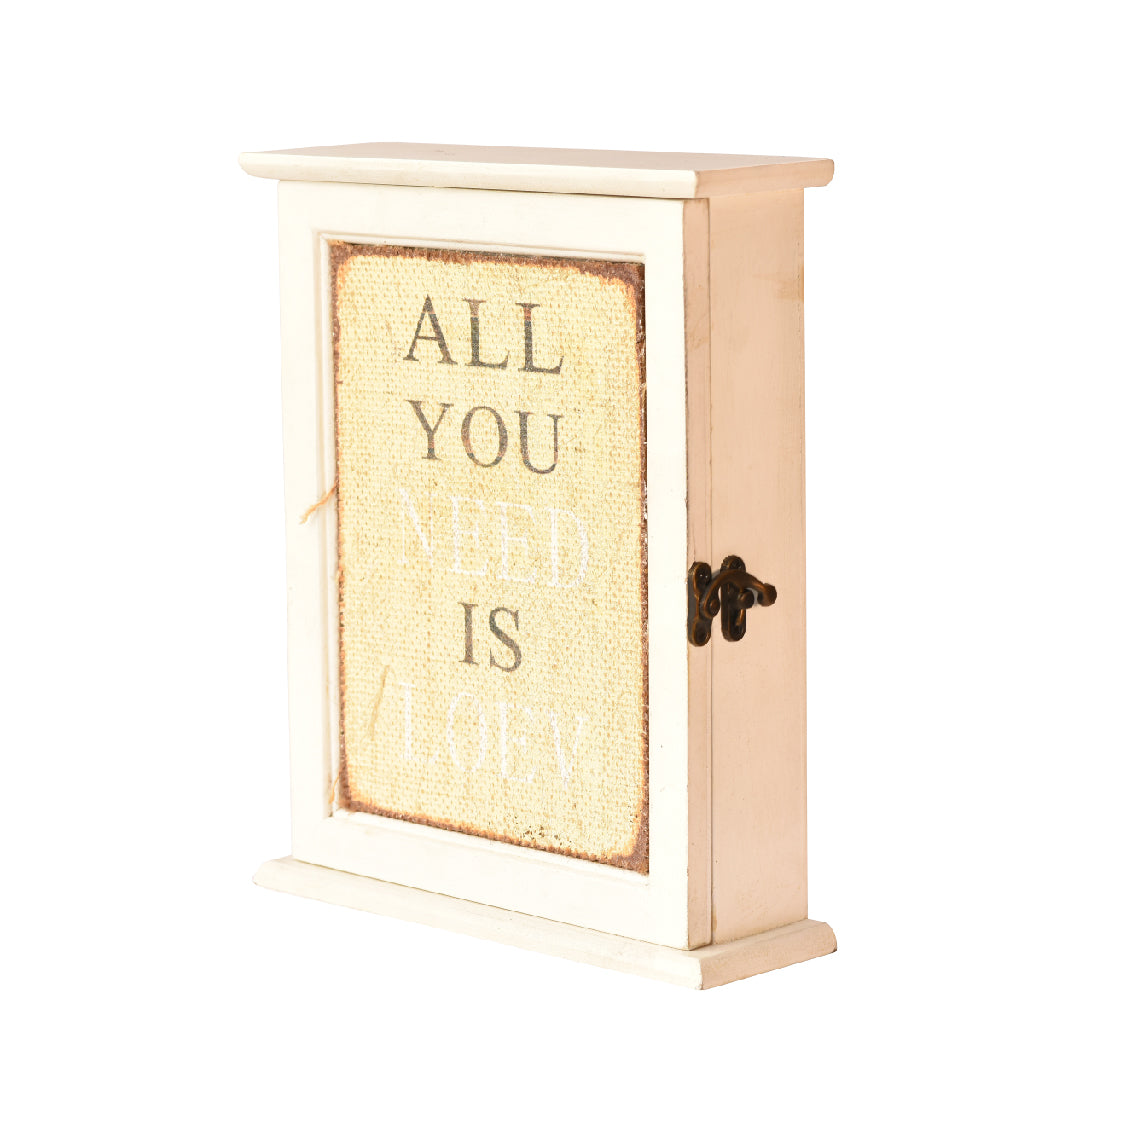 Wooden Key Box Decor